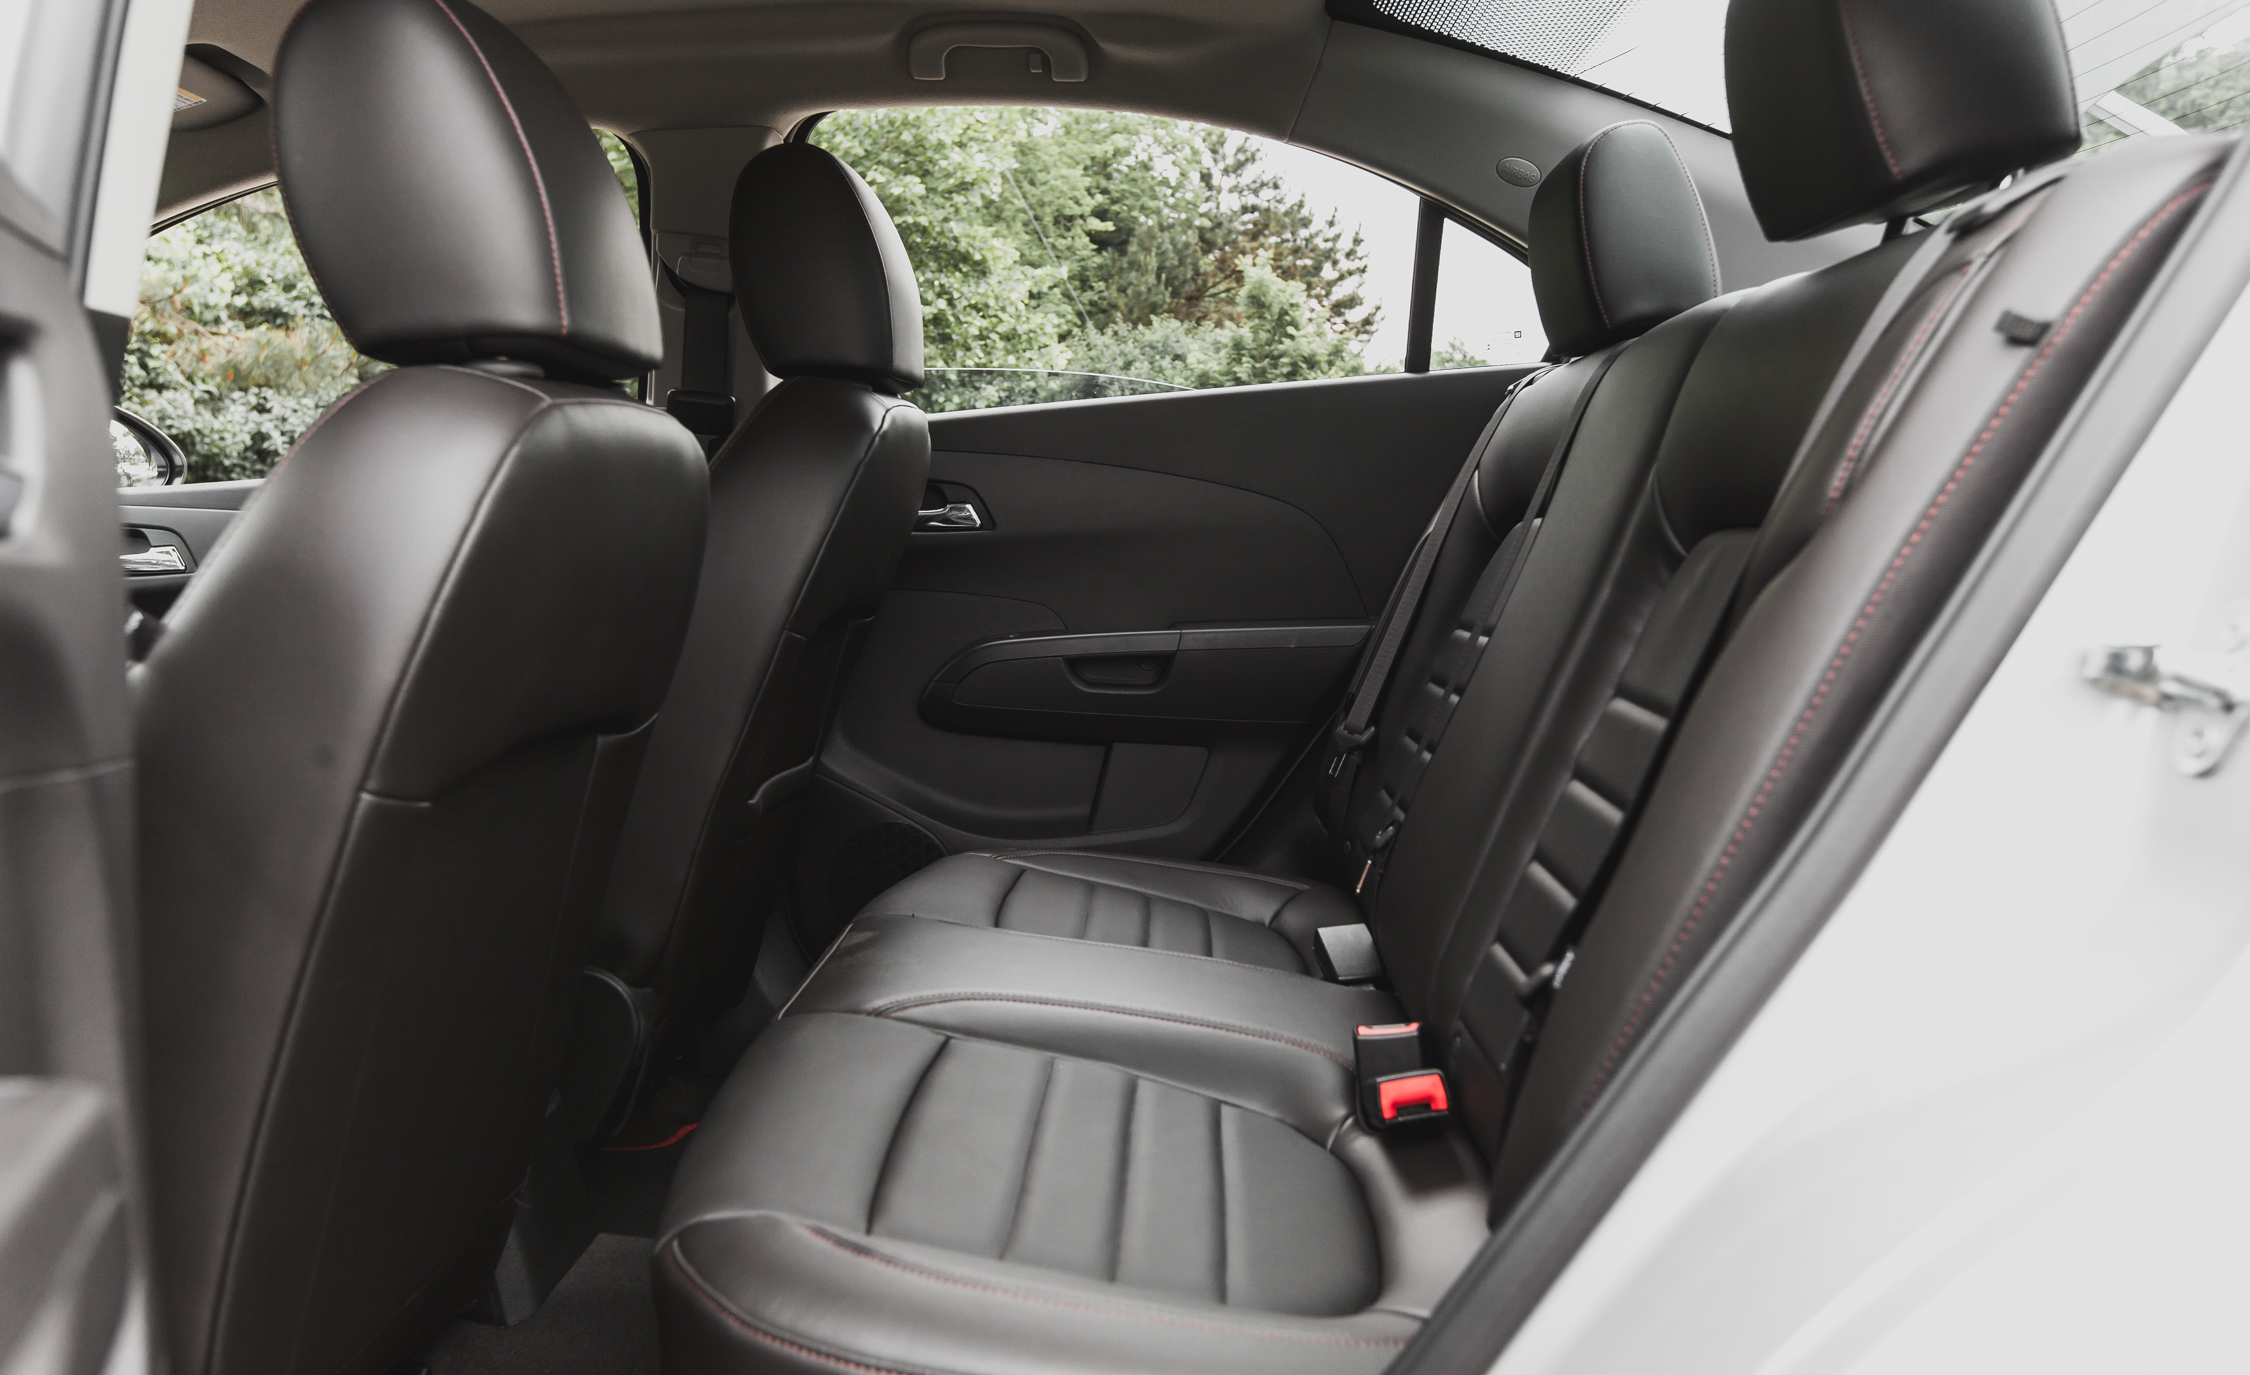 2014 Chevrolet Sonic RS Sedan Interior (Photo 23 of 27)